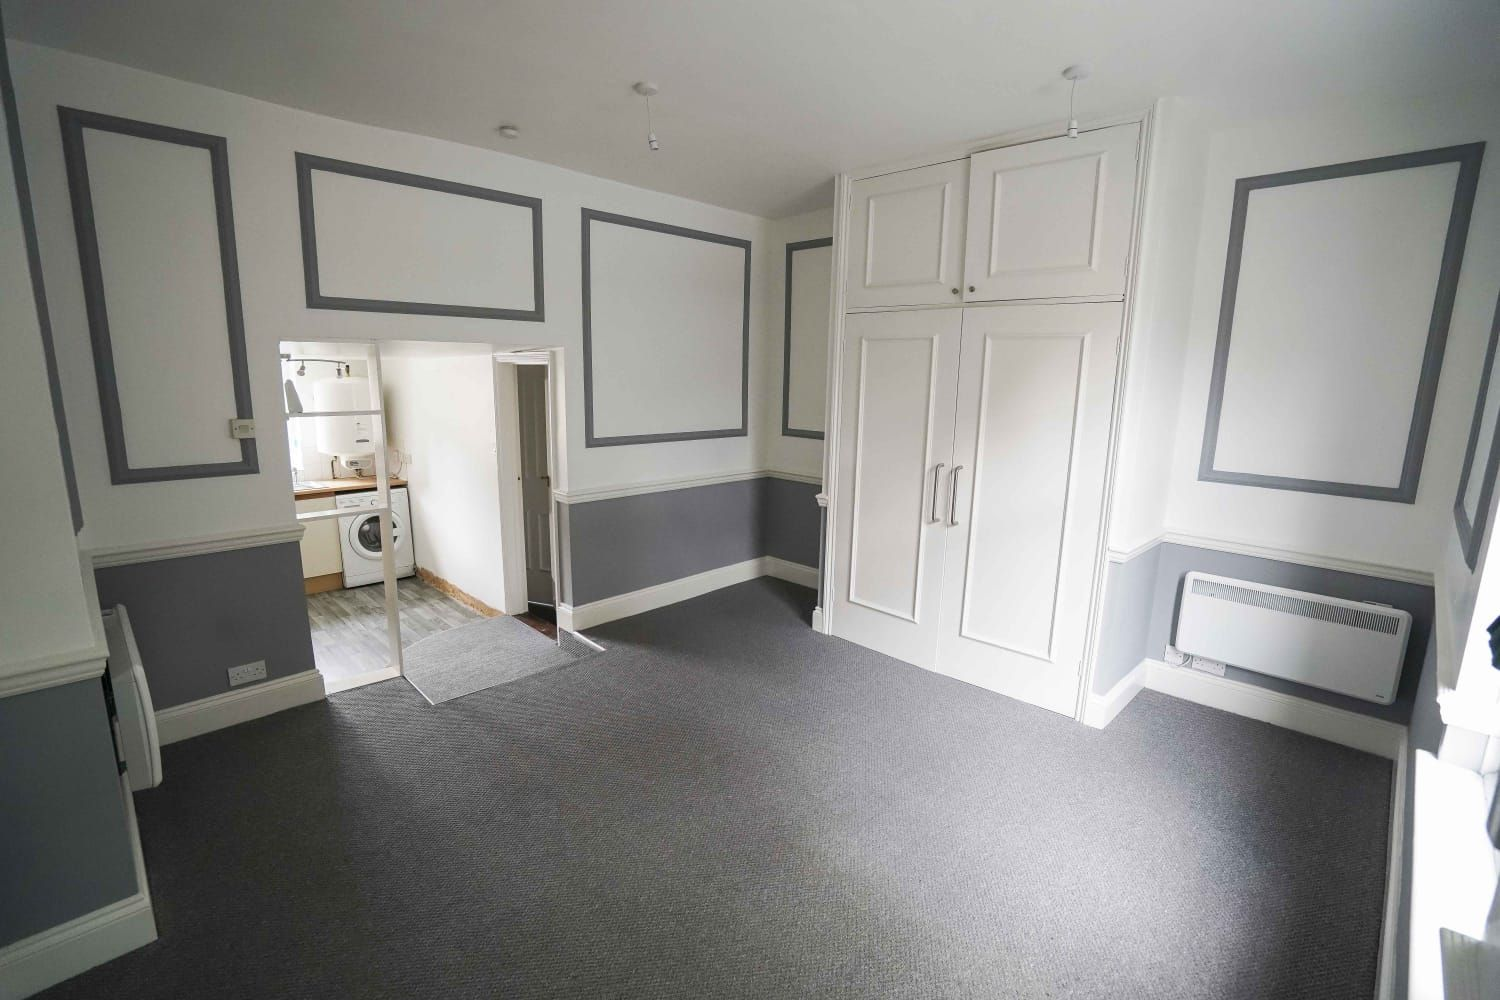 Studio Flat/apartment To Let in Ipswich - Photograph 2